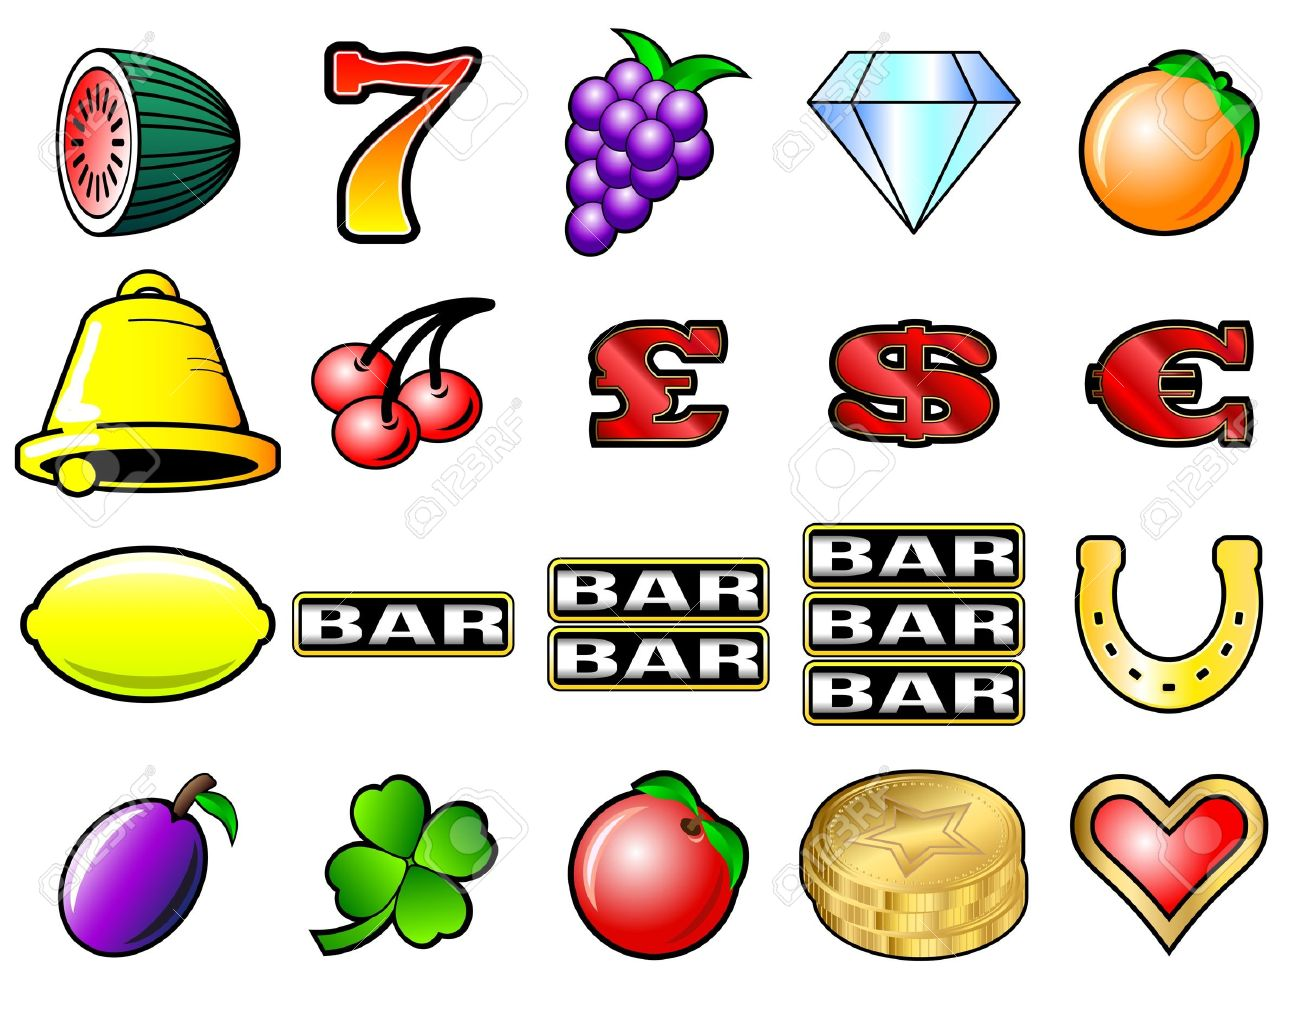 Slot machine fruits and other icon vector illustrations - 18594167